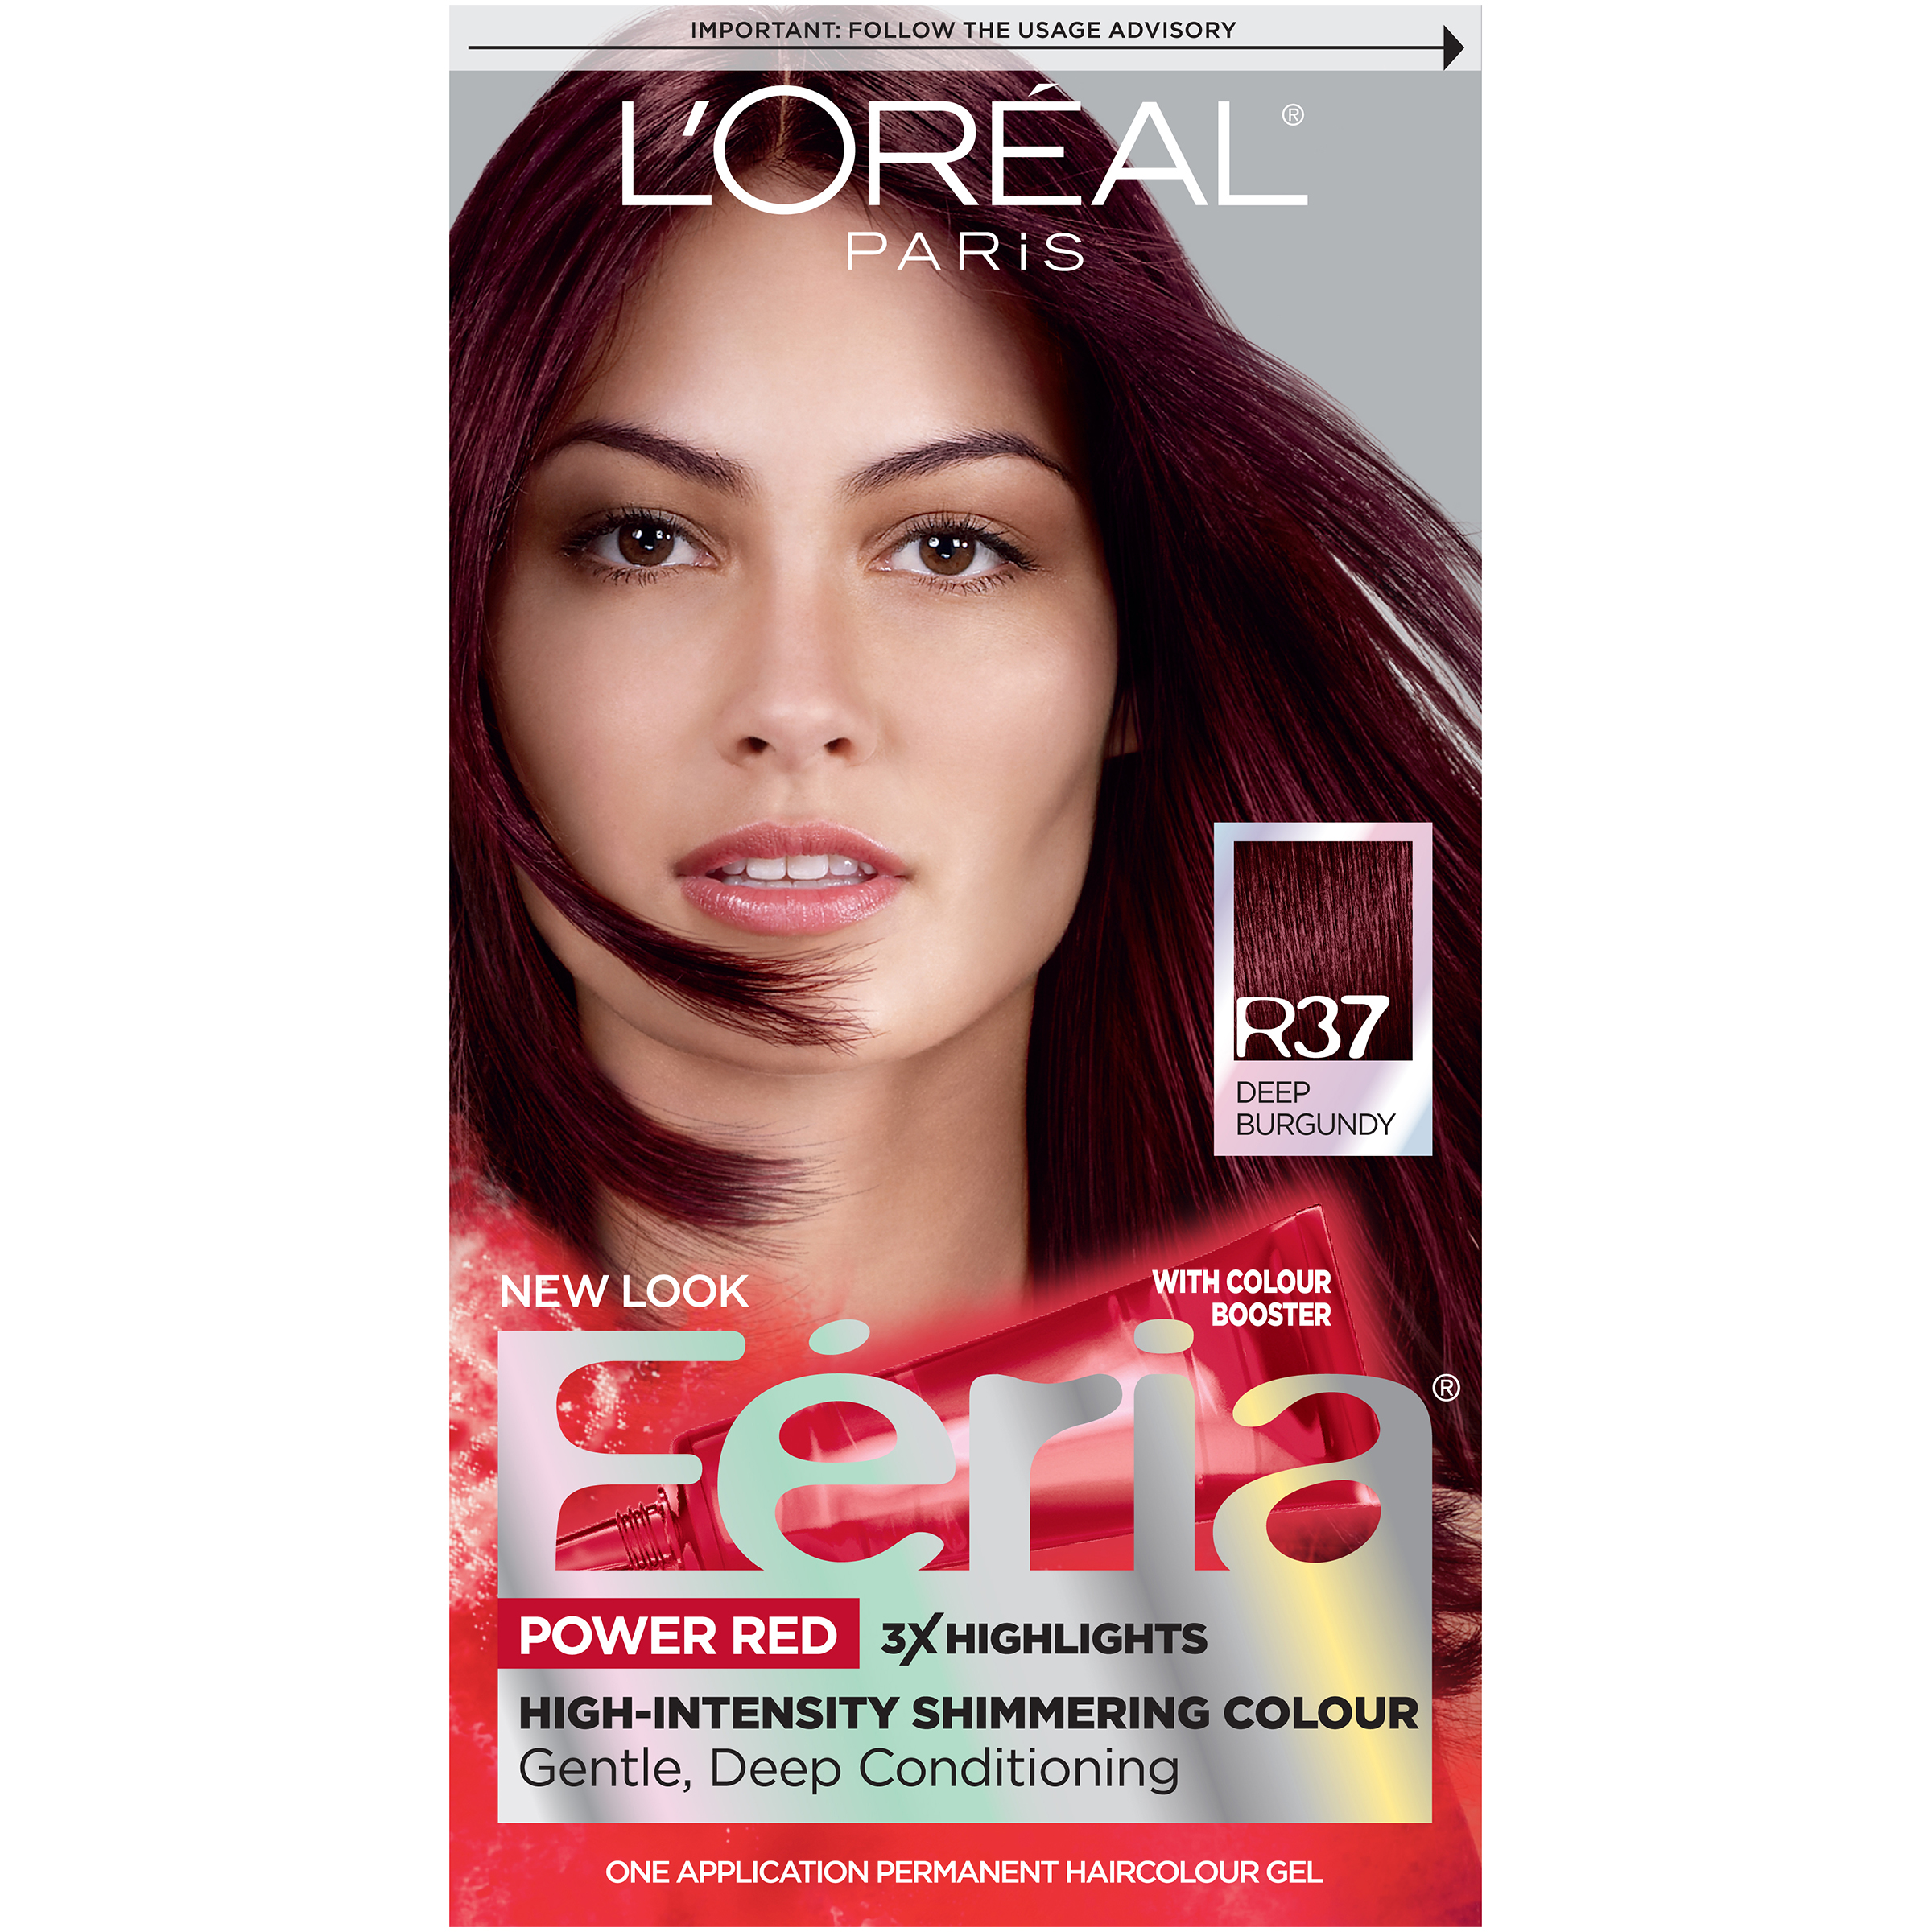 Loreal Feria Power Reds High Intensity Hair Color R37 Blowout